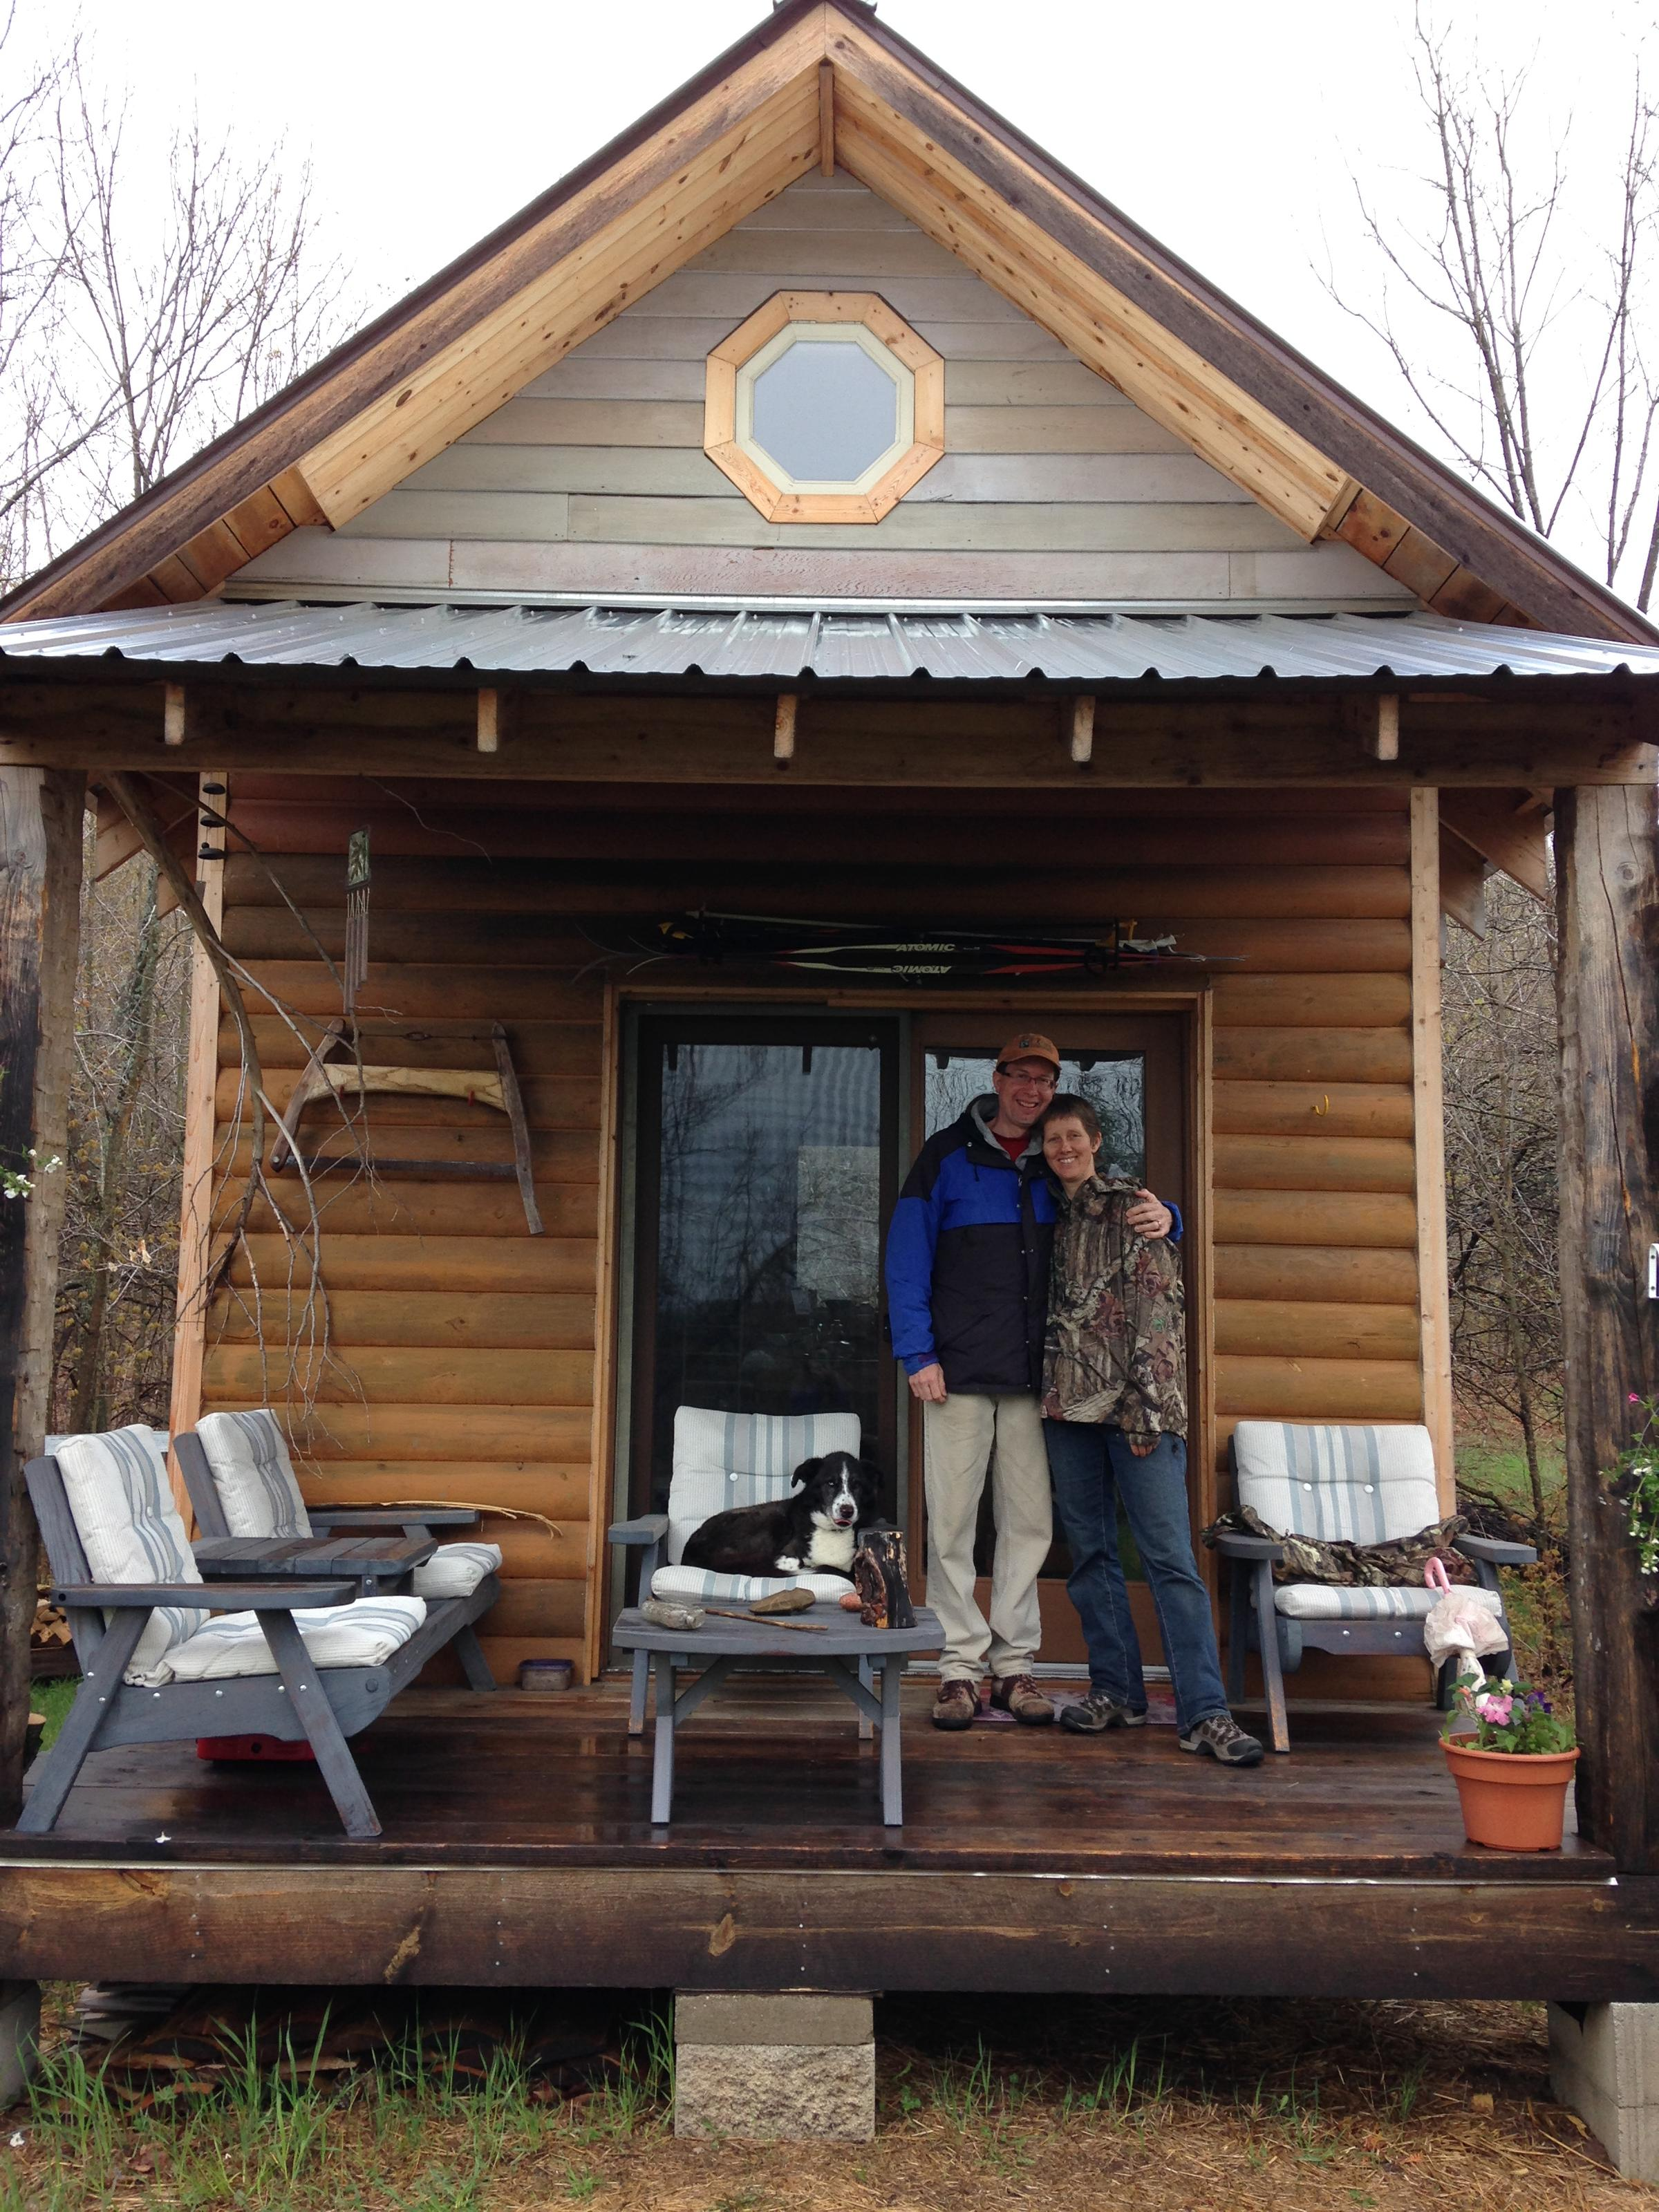 Living off the grid can be illegal michigan radio for Building a house in michigan